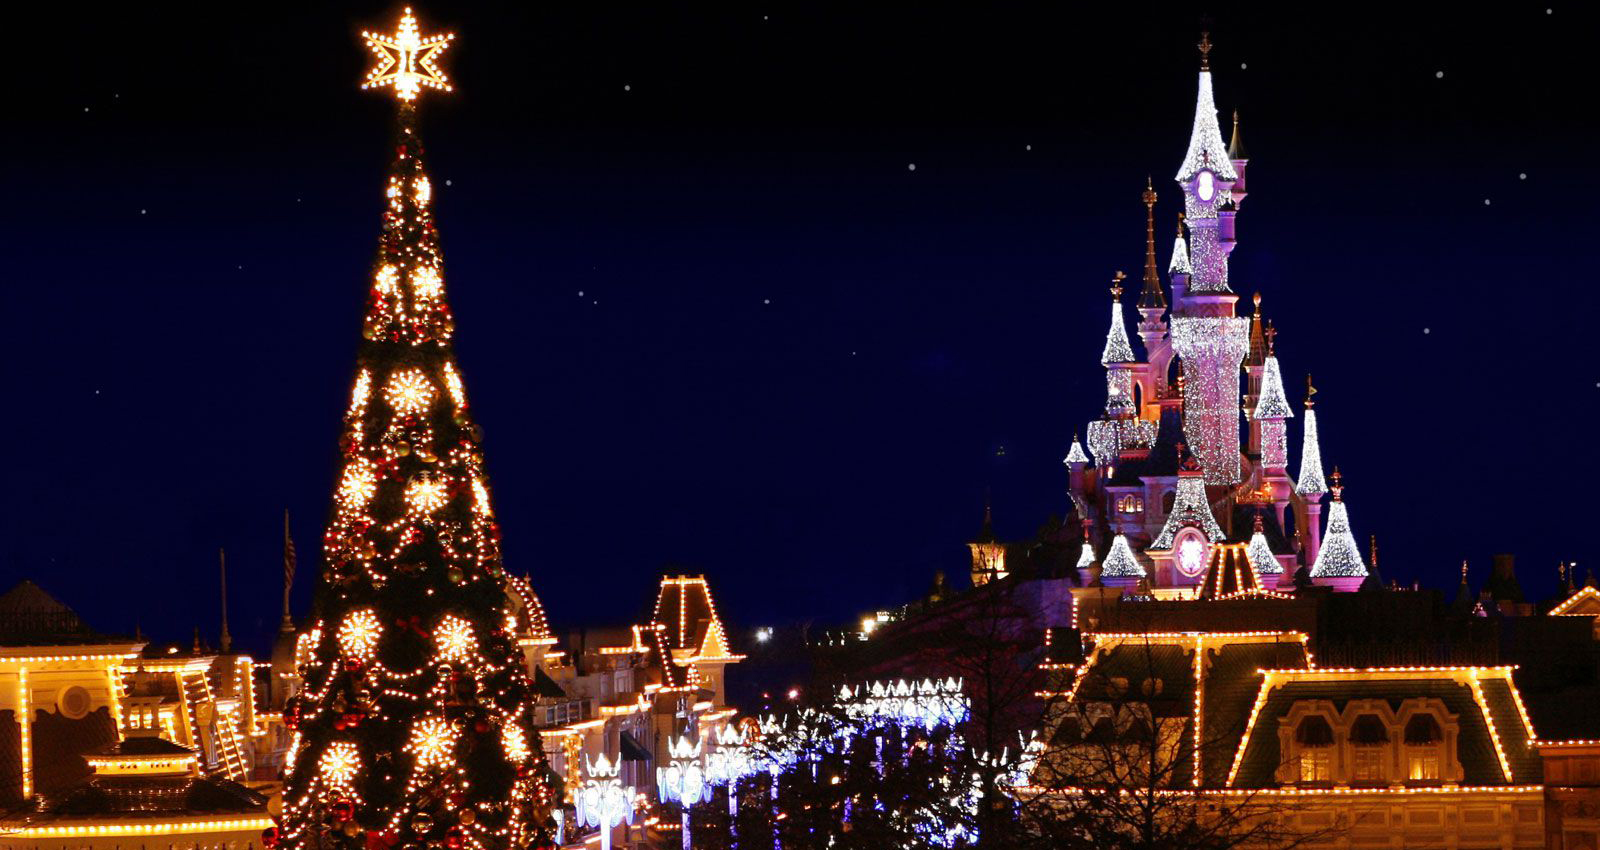 Paris Christmas Market School Trip: Christmas visit to Disneyland Paris